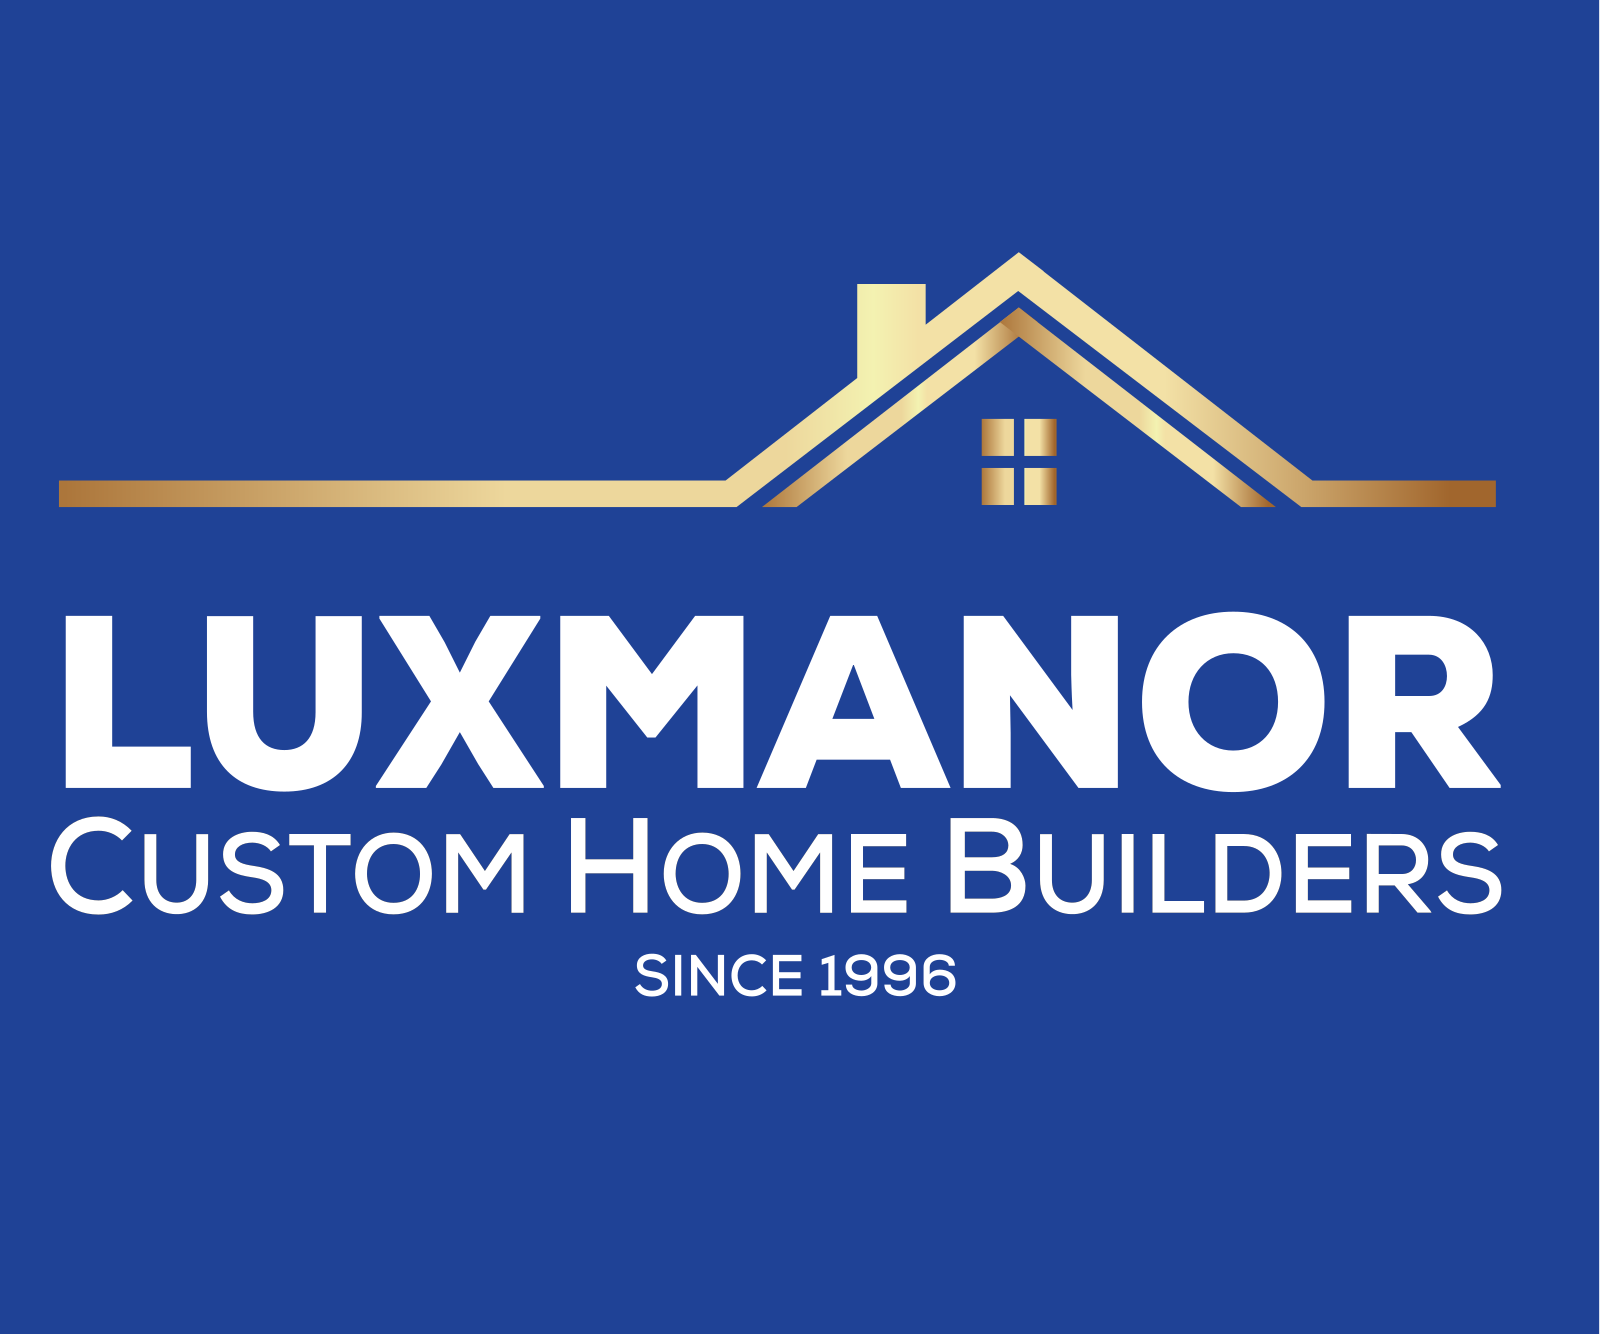 Luxmanor Custom Home Builders